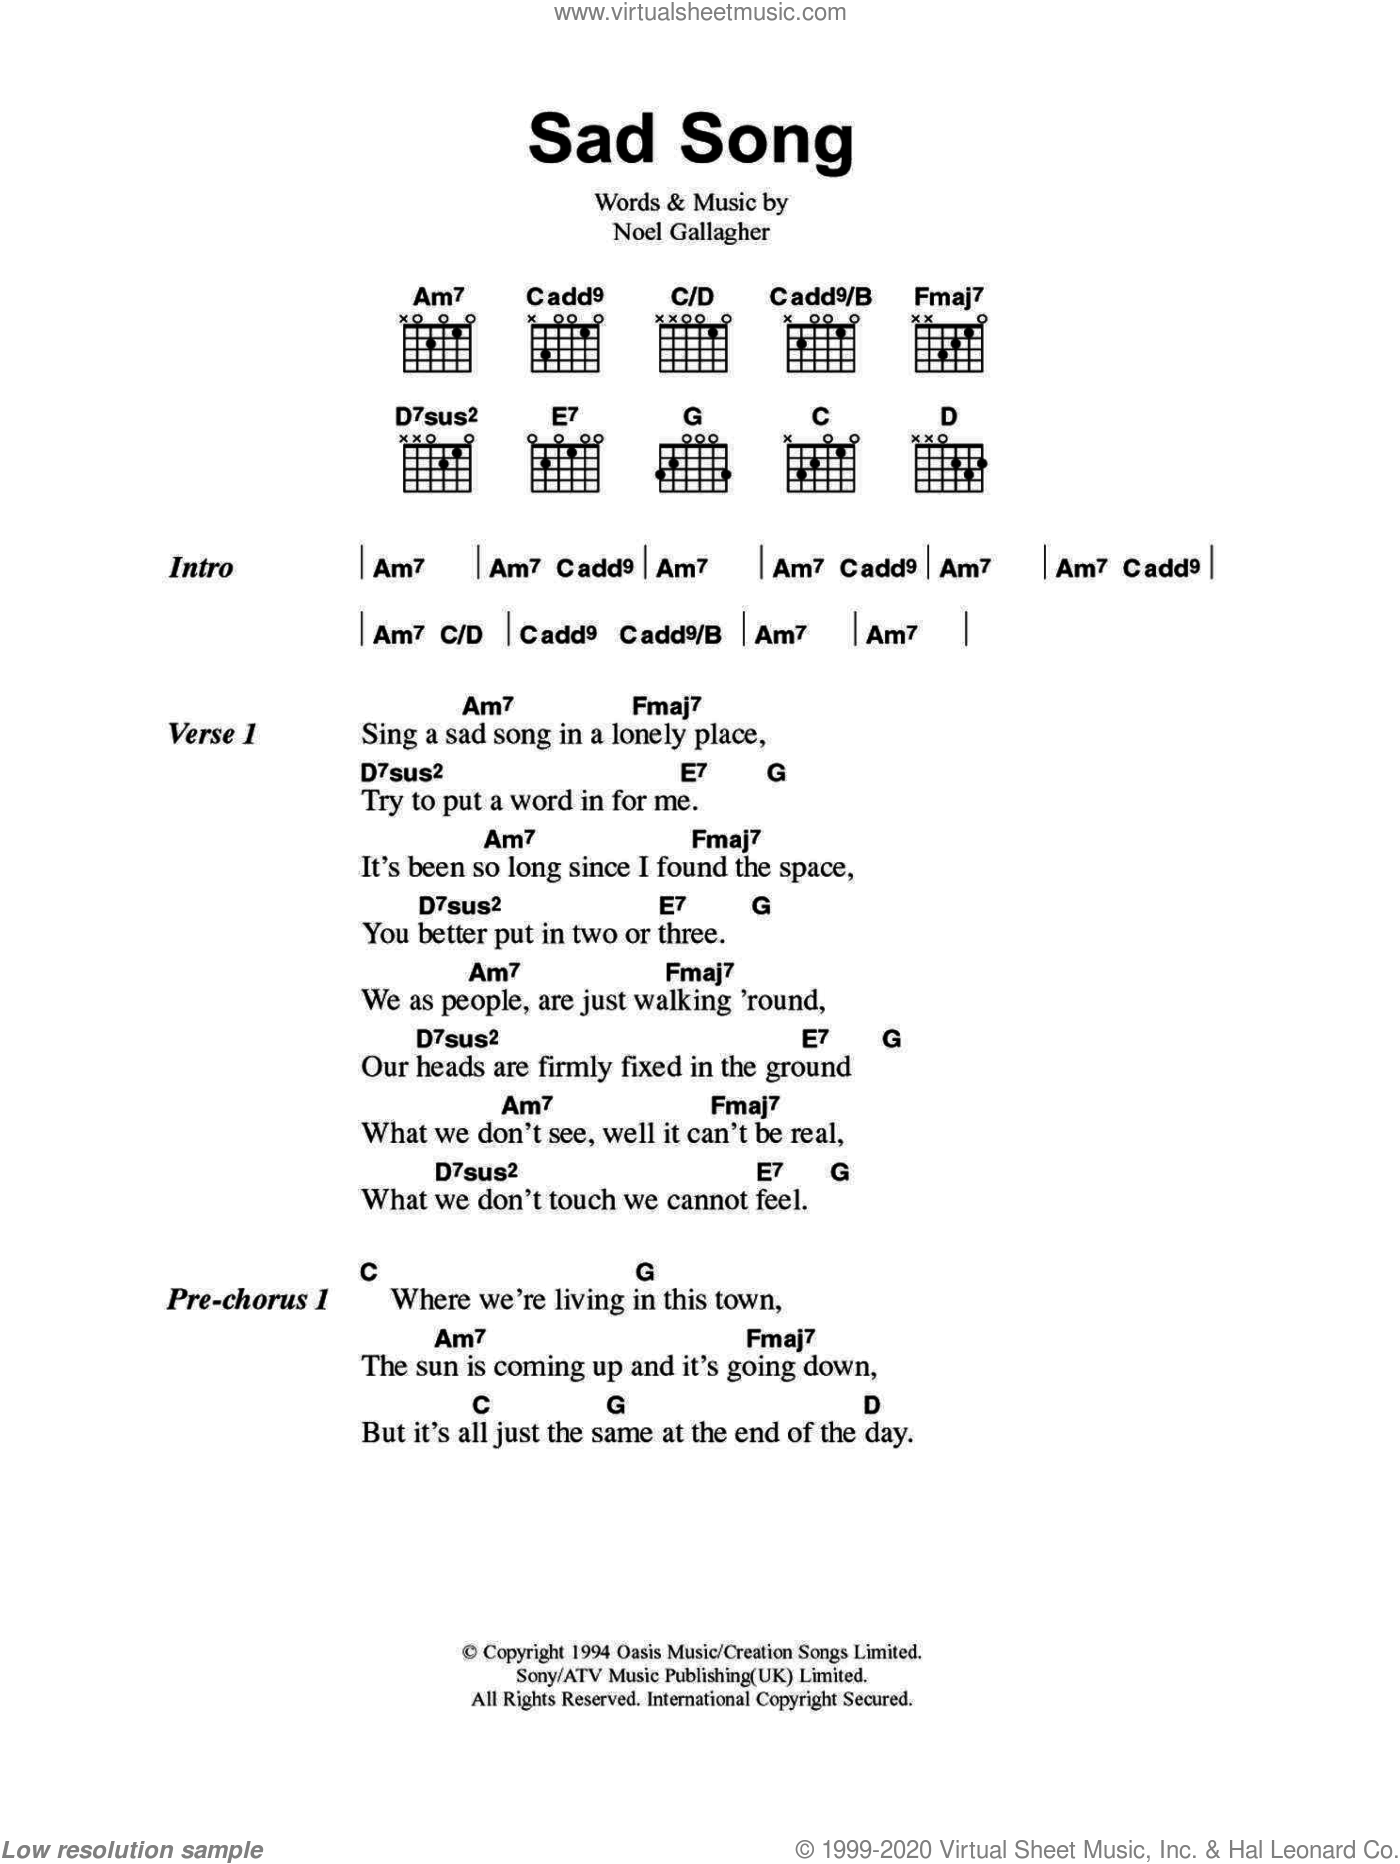 Sad Song sheet music for guitar (chords) by Noel Gallagher